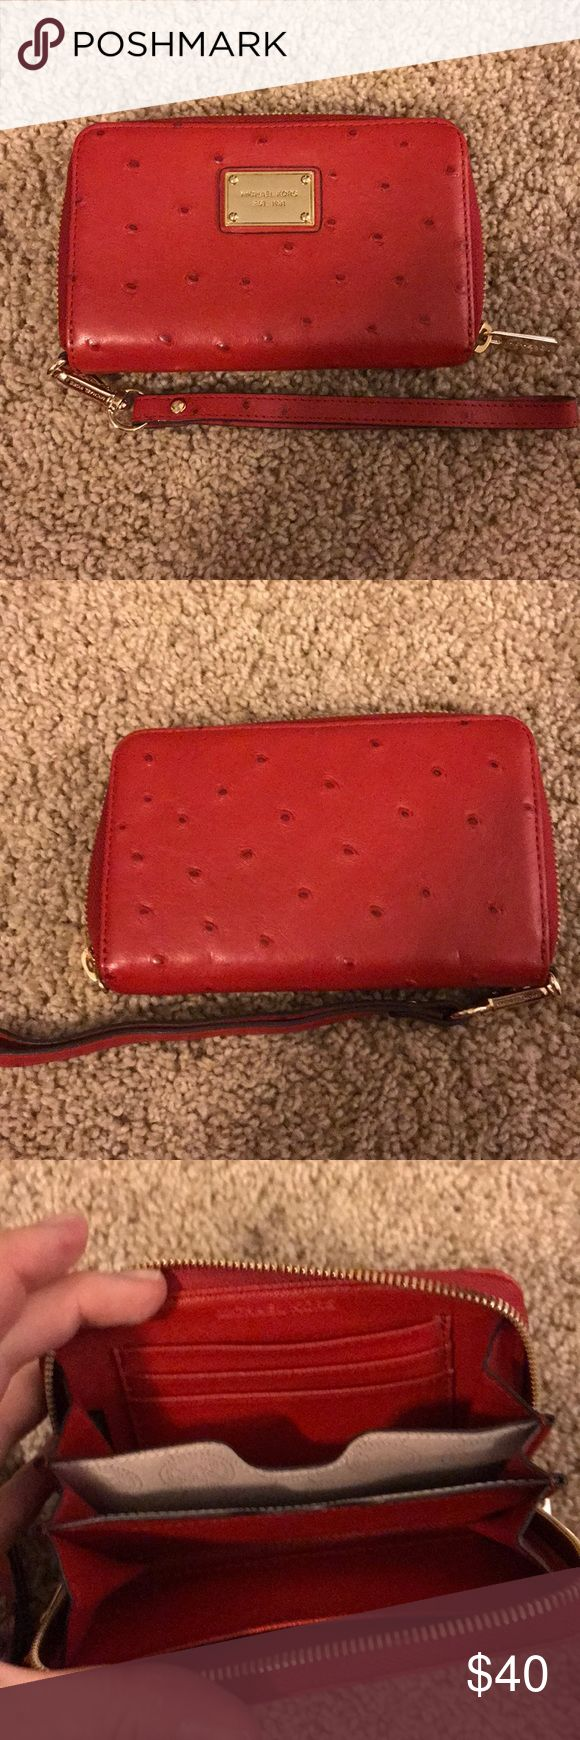 Michael Kors Red Wristlet/ Wallet Never used! Michael Kors Bags Wallets